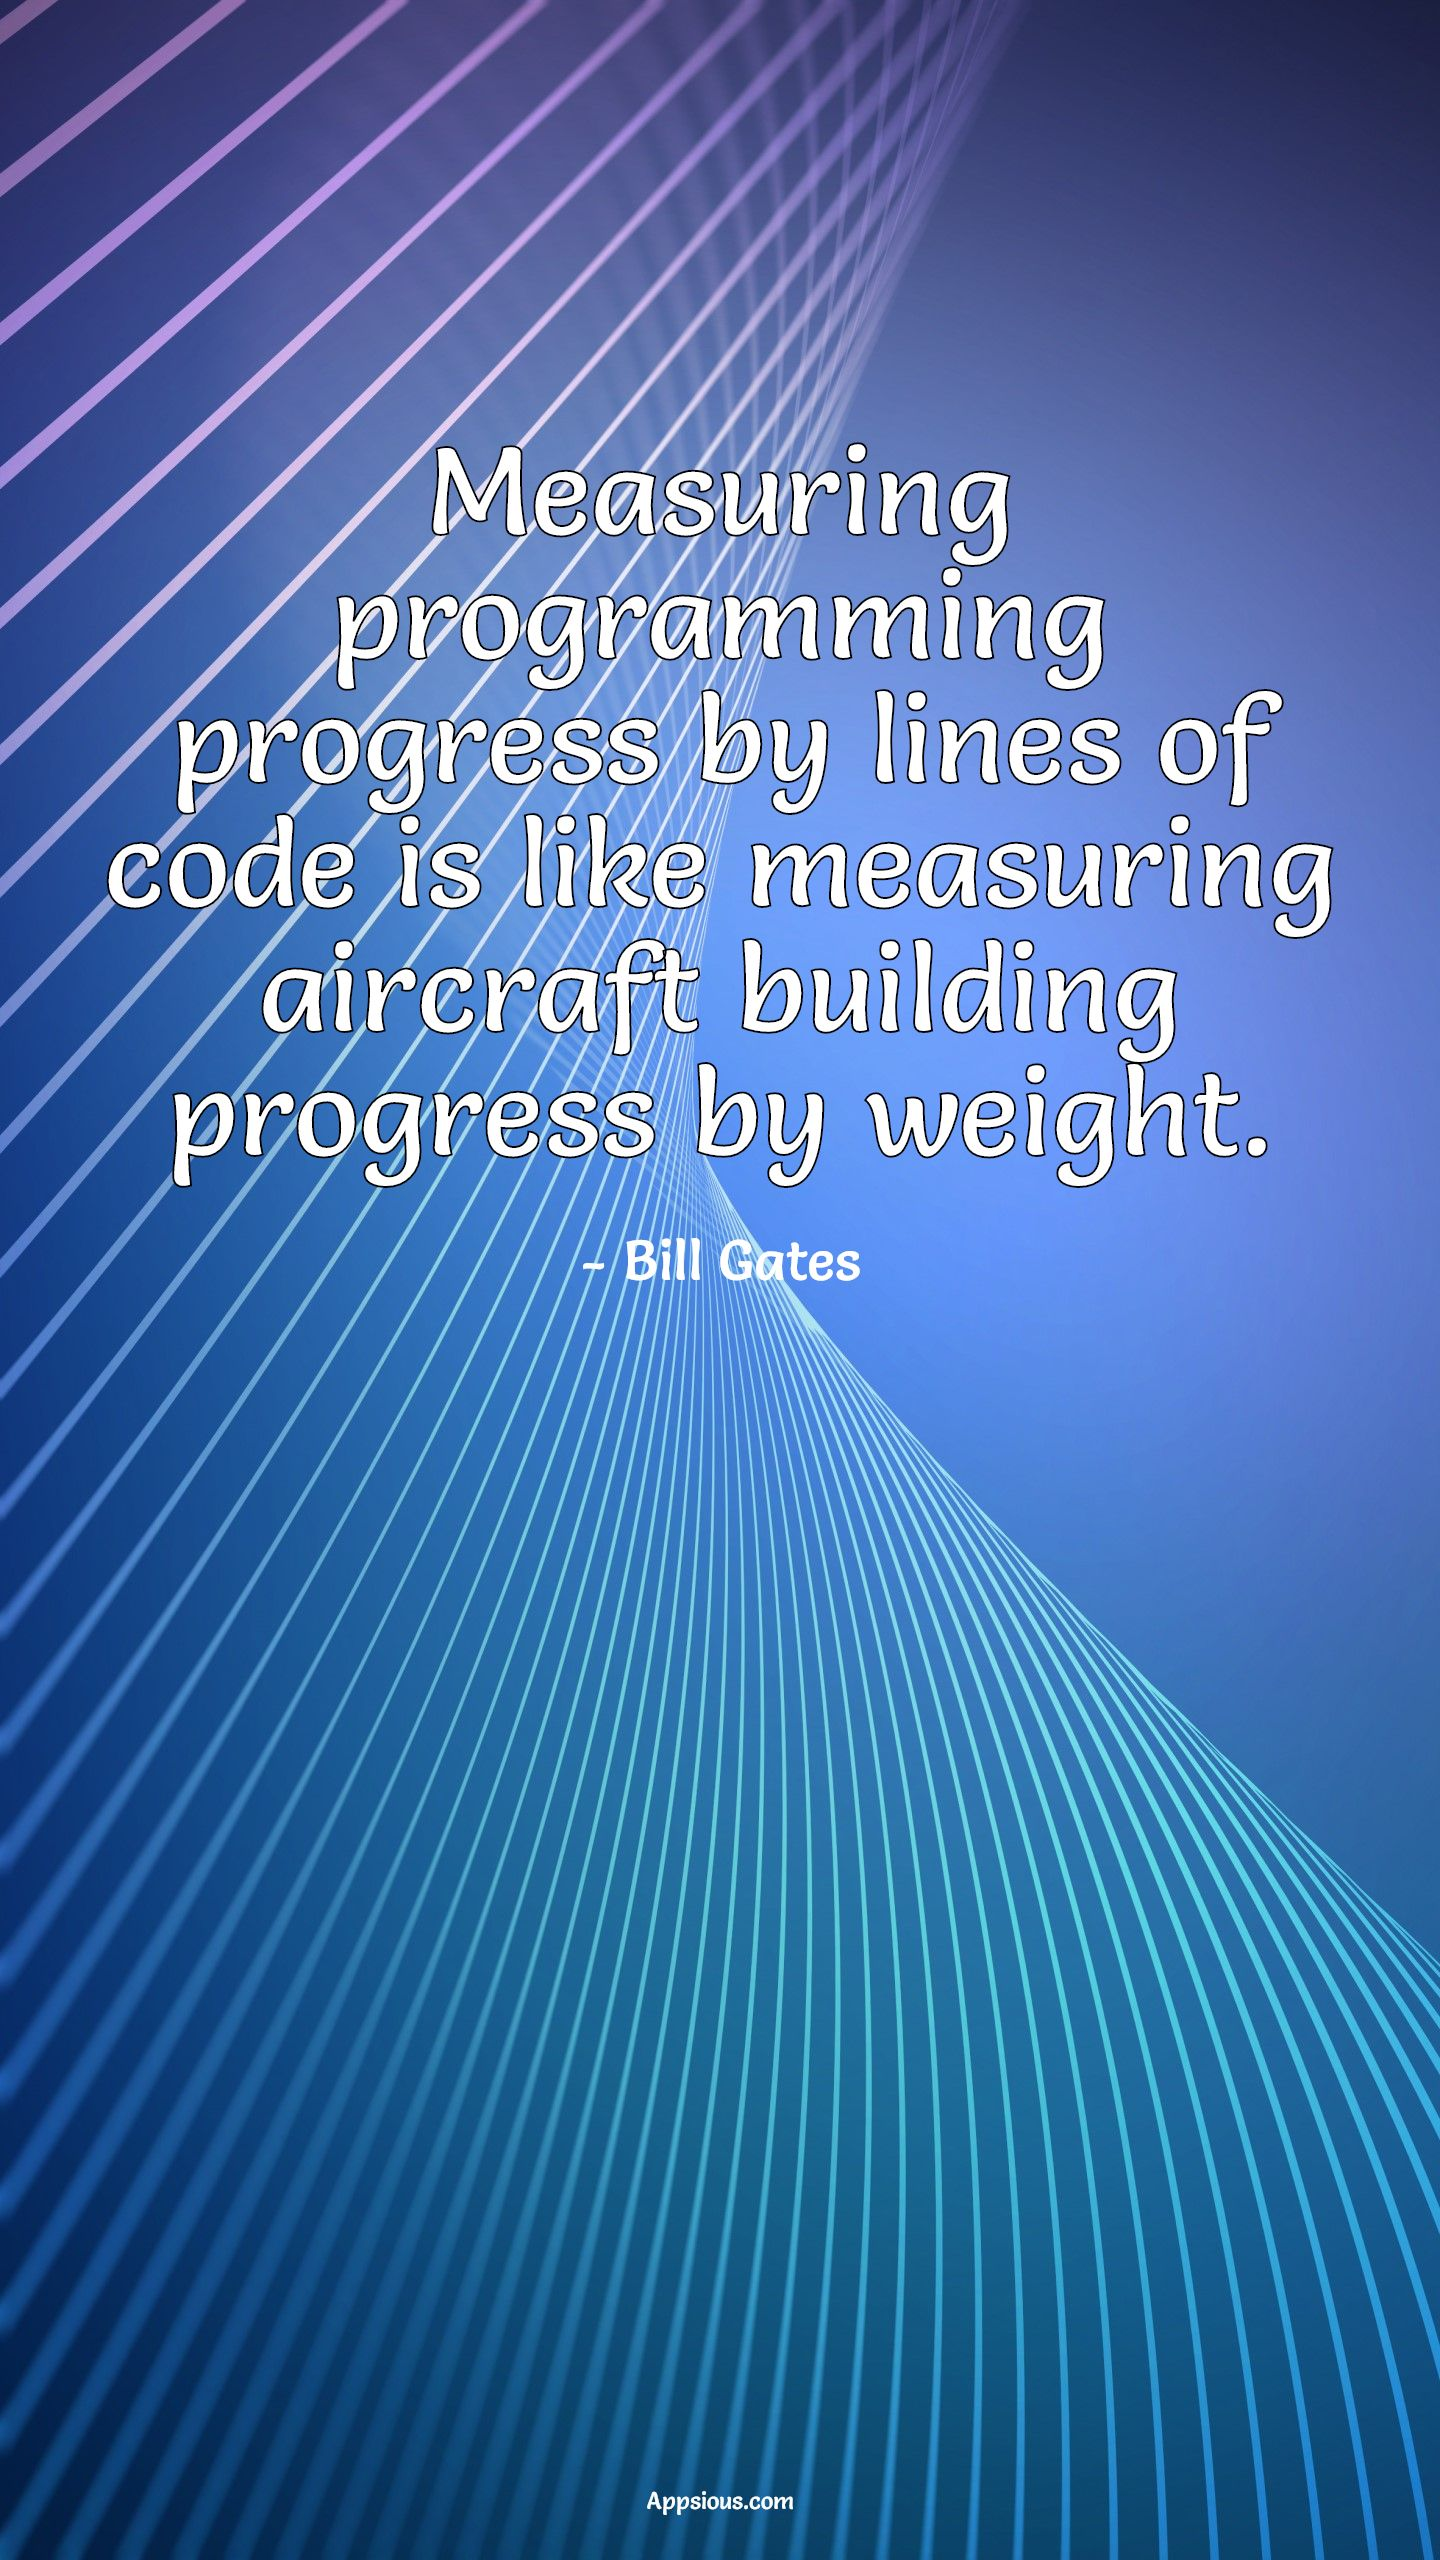 Measuring programming progress by lines of code is like measuring aircraft building progress by weight.